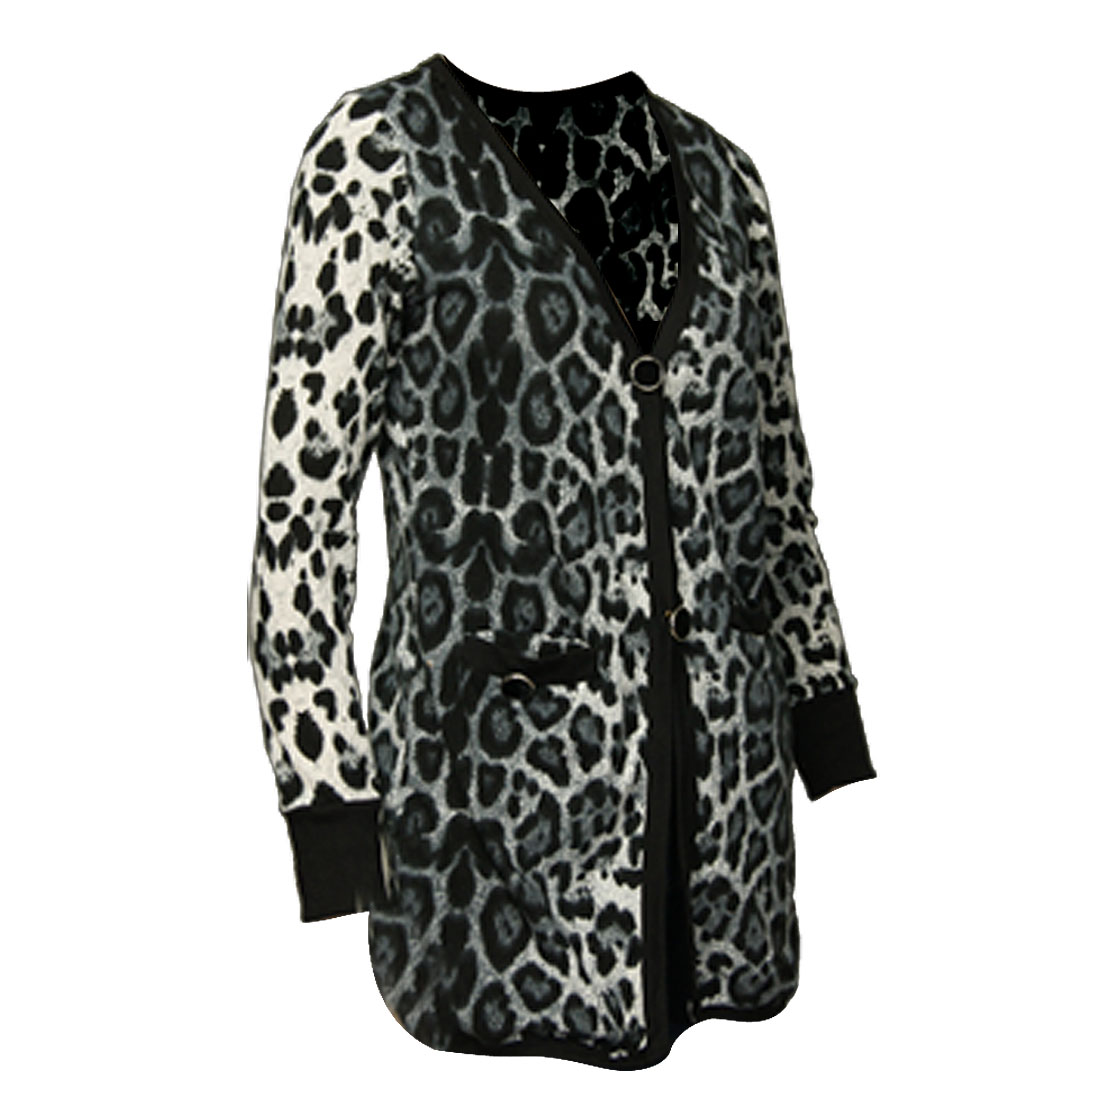 Lady One Button Closure Leopard Print Ribbed Trim Cardigan S